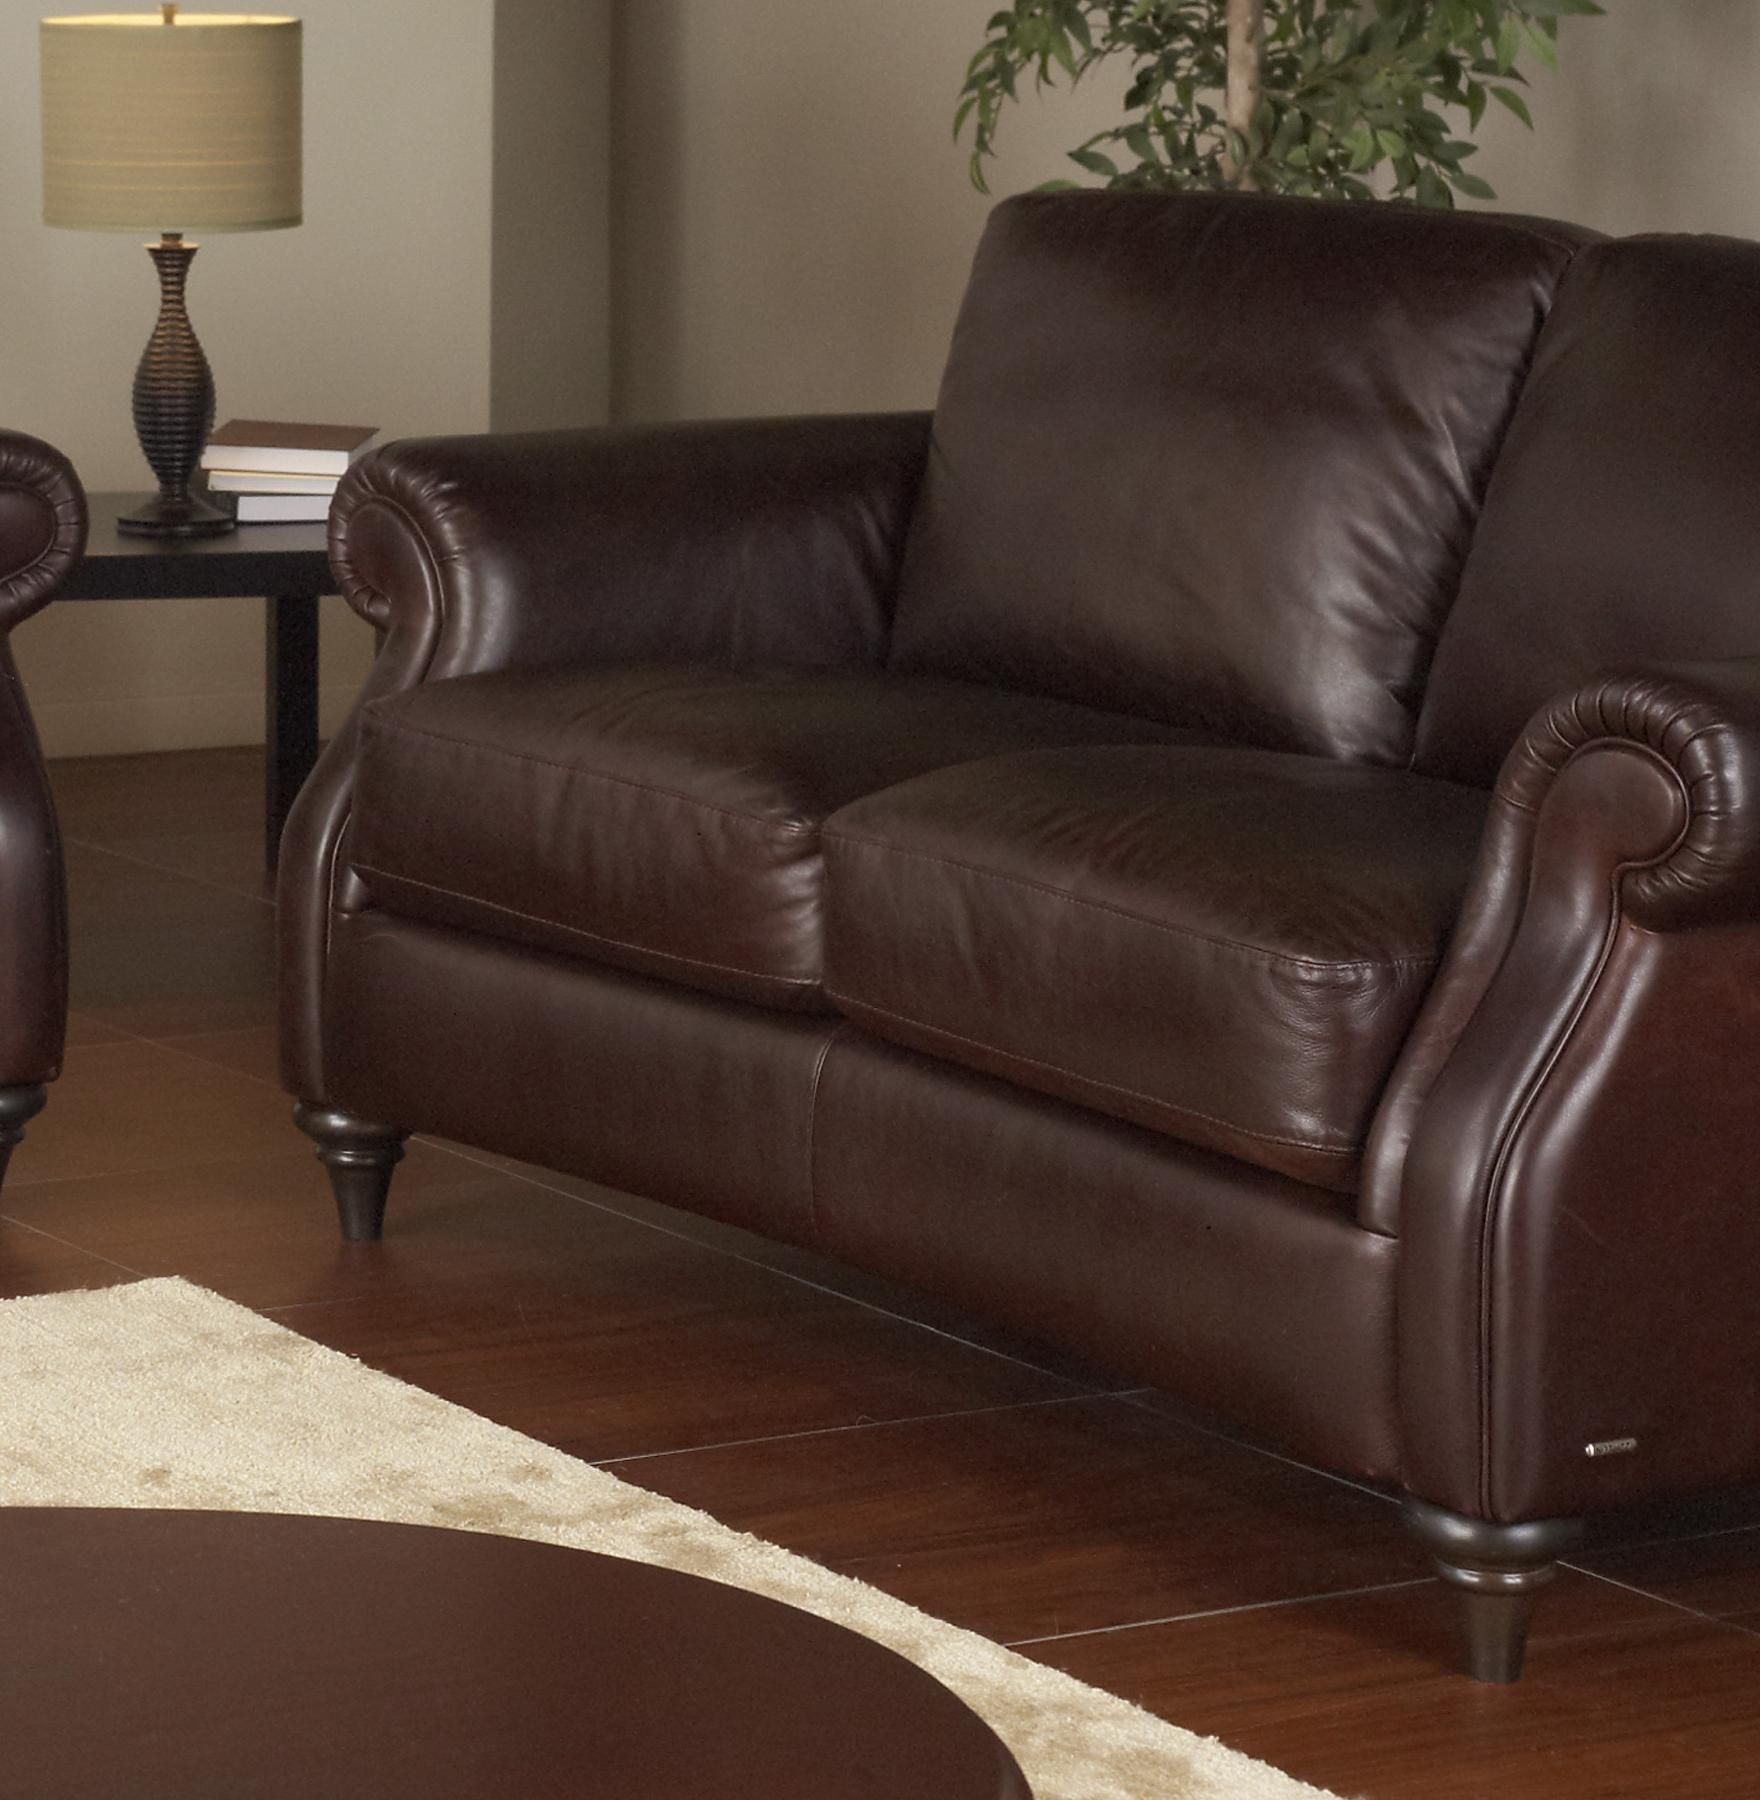 Swell A297 Leather Loveseat By Natuzzi Editions Leather Loveseat Gmtry Best Dining Table And Chair Ideas Images Gmtryco